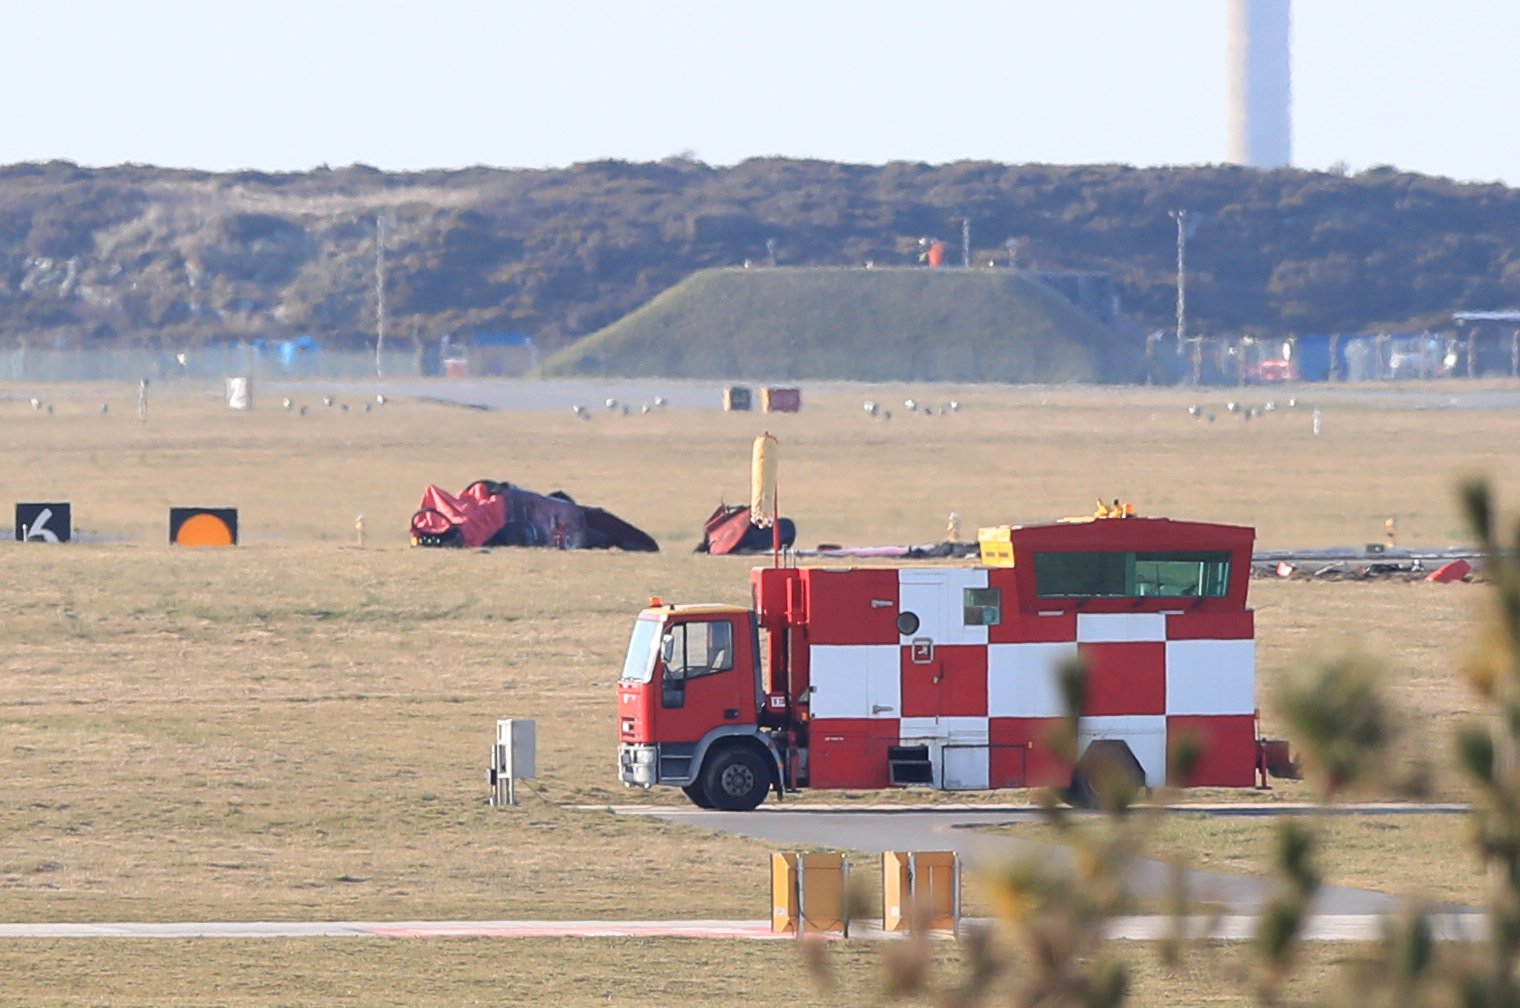 Wreckage after a Red Arrows jet crashed at RAF Valley in north Wales. PRESS ASSOCIATION Photo. Picture date: Tuesday March 20, 2018. It is understood there were two people on board the Red Arrows jet aircraft which crashed on Tuesday. See PA story DEFENCE RedArrow. Photo credit should read: Peter Byrne/PA Wire